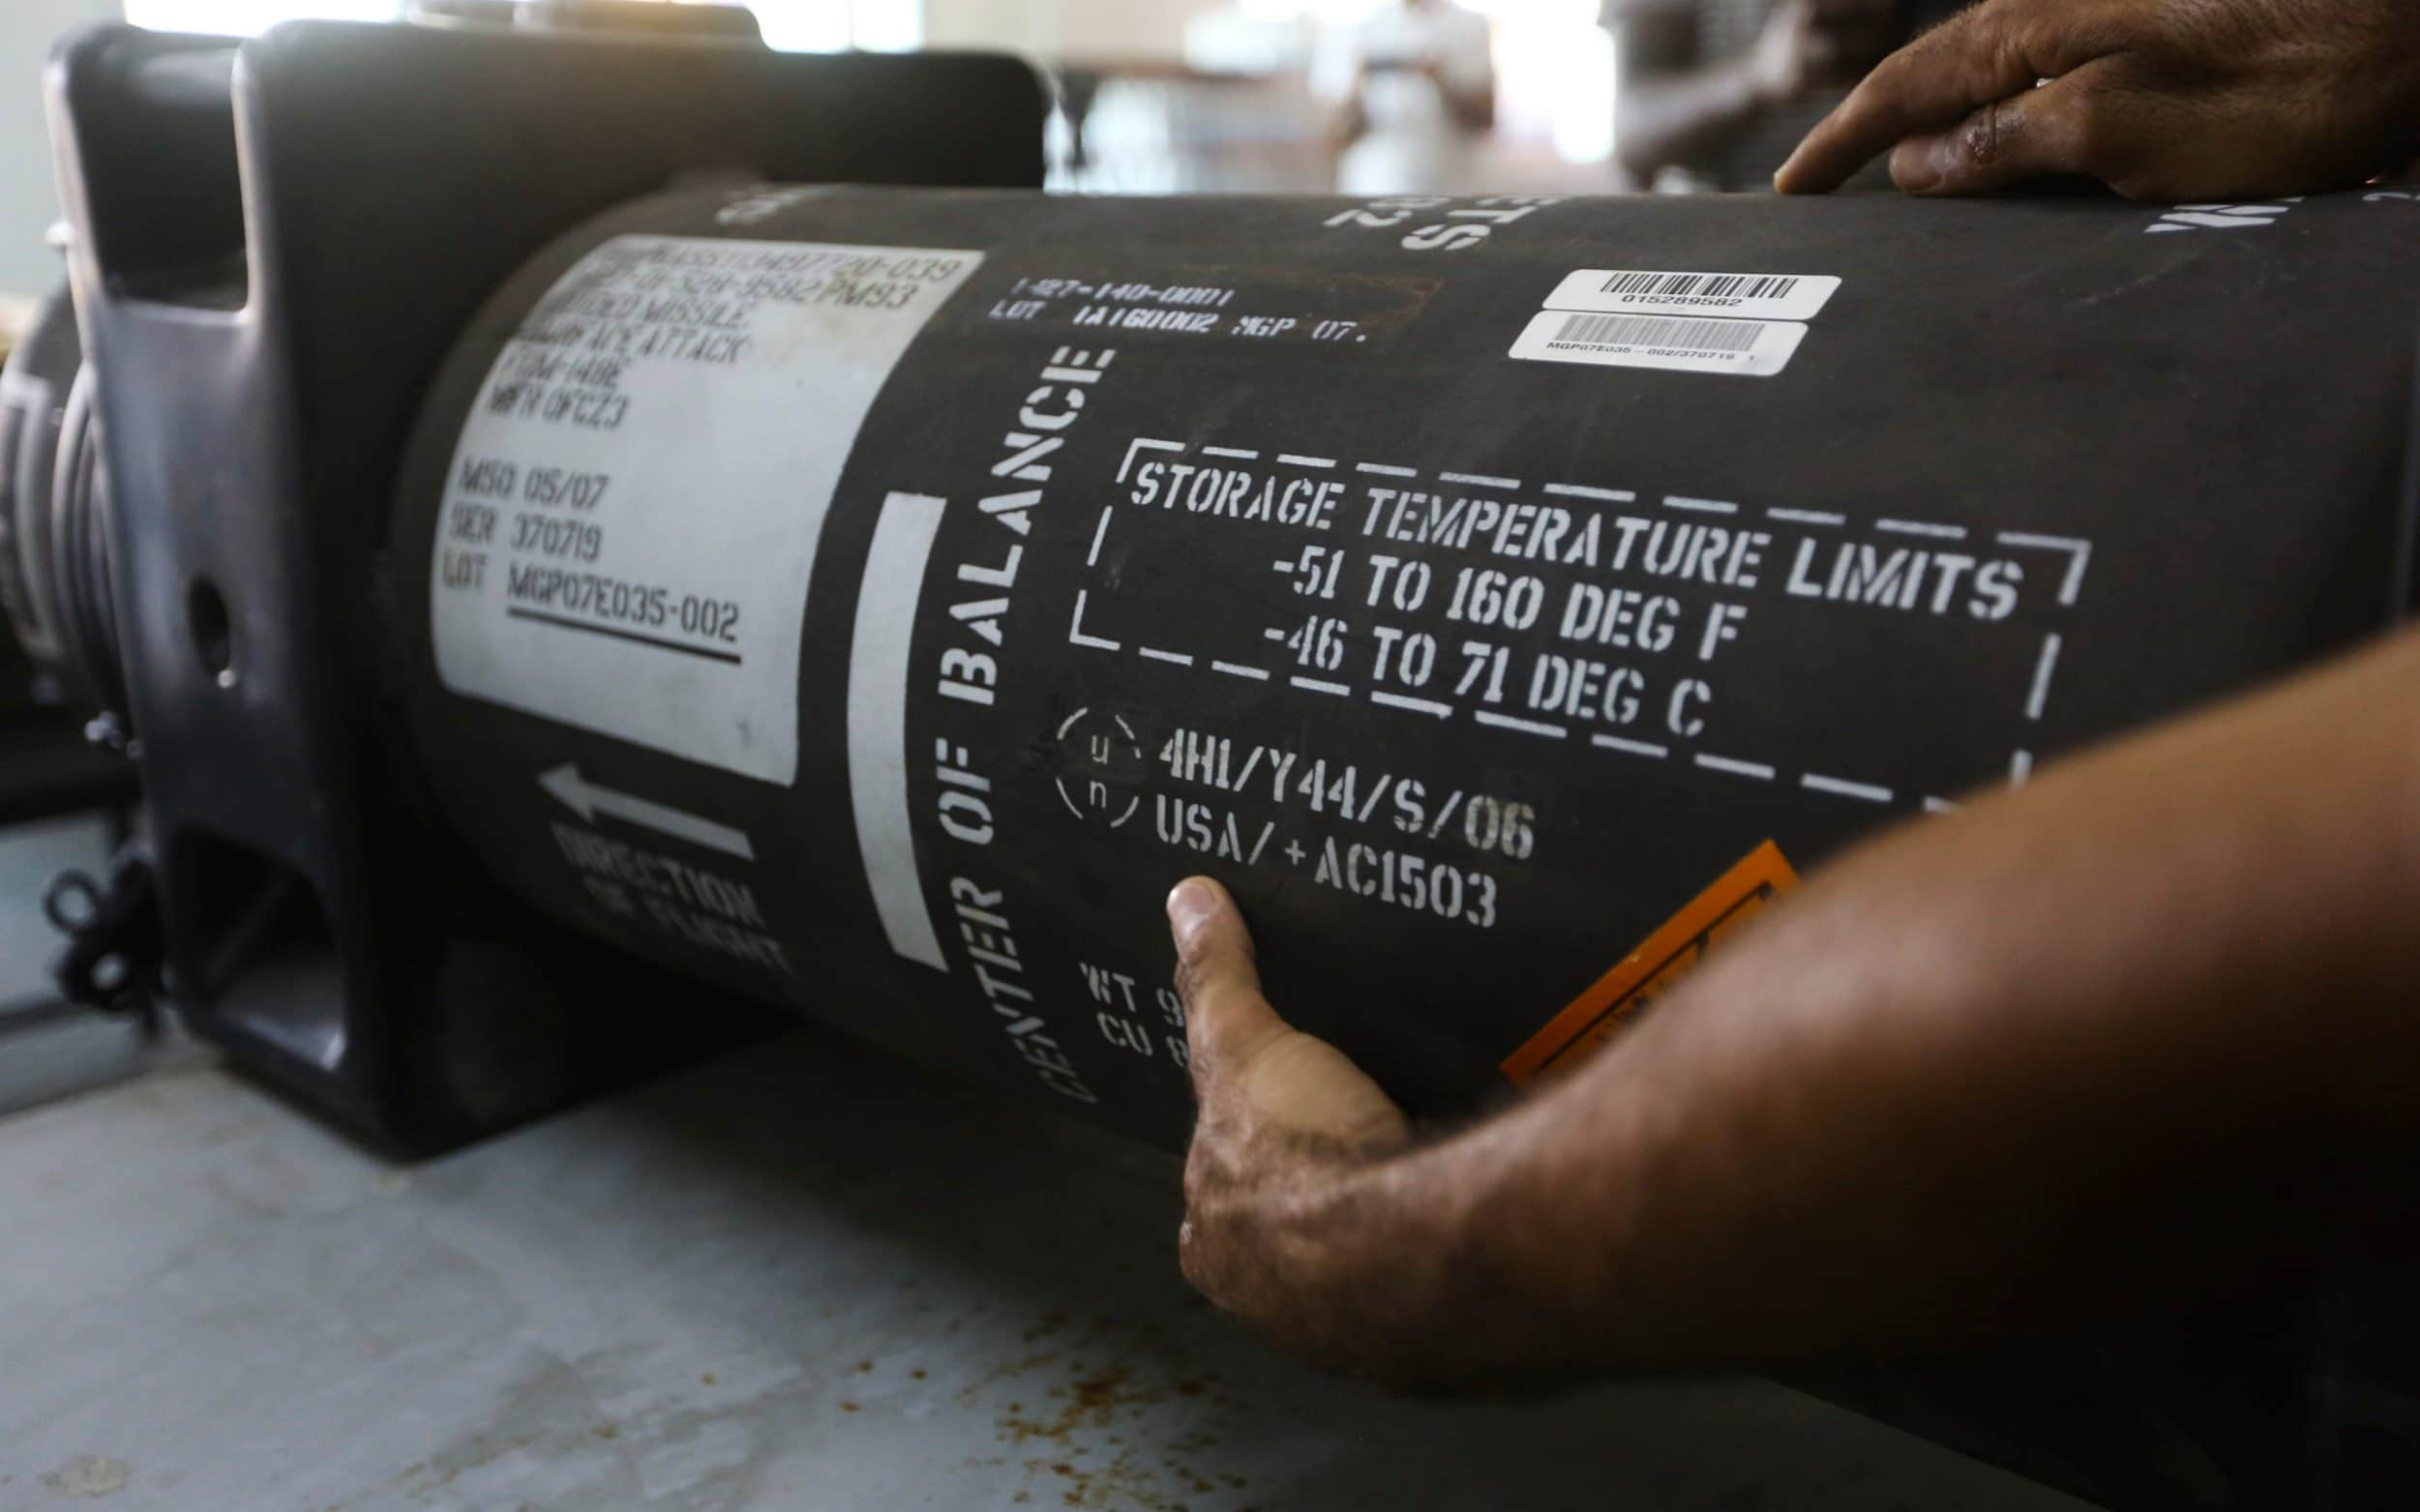 US-made missiles found at base used by Libyan rebels to attack Tripoli are ours, France admits